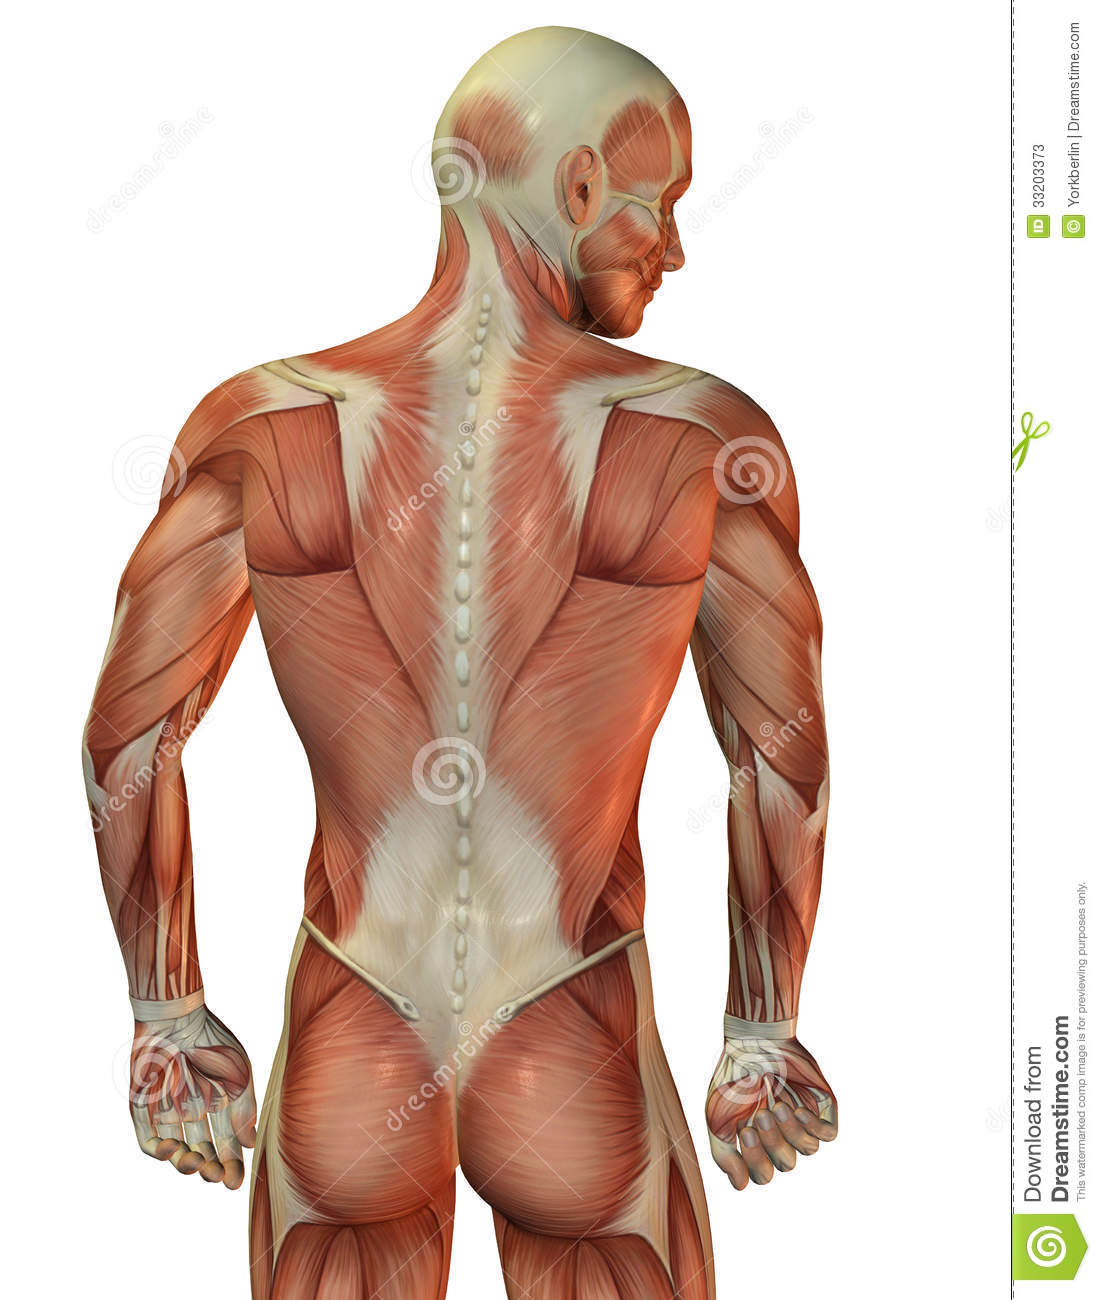 Man Back Muscular Structure Stock Illustration - Illustration of ...